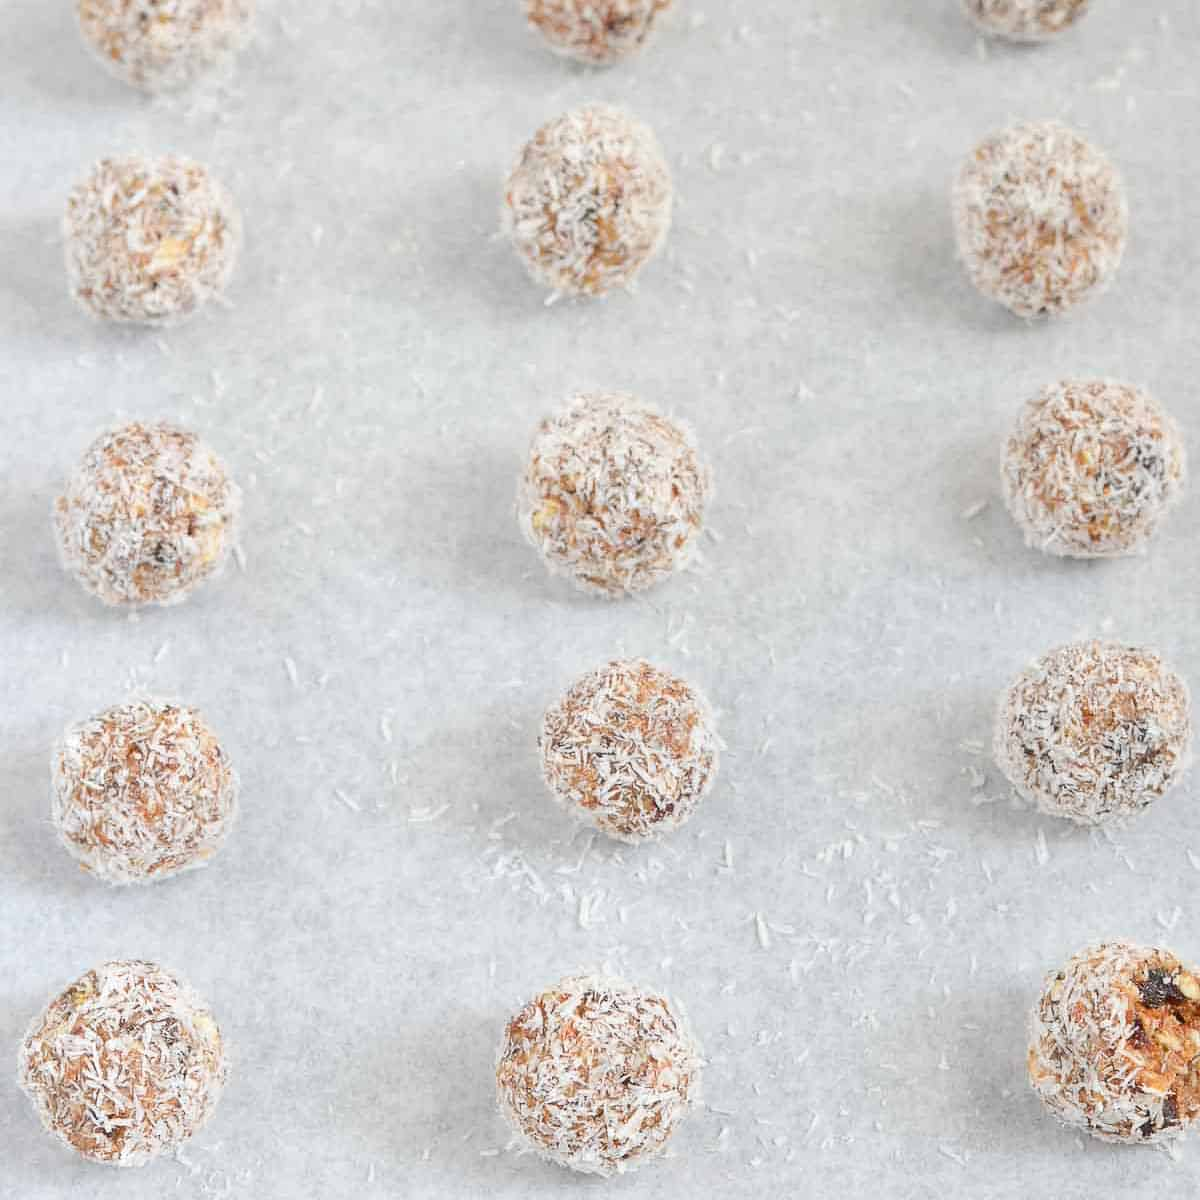 close up of caramel protein bliss balls.